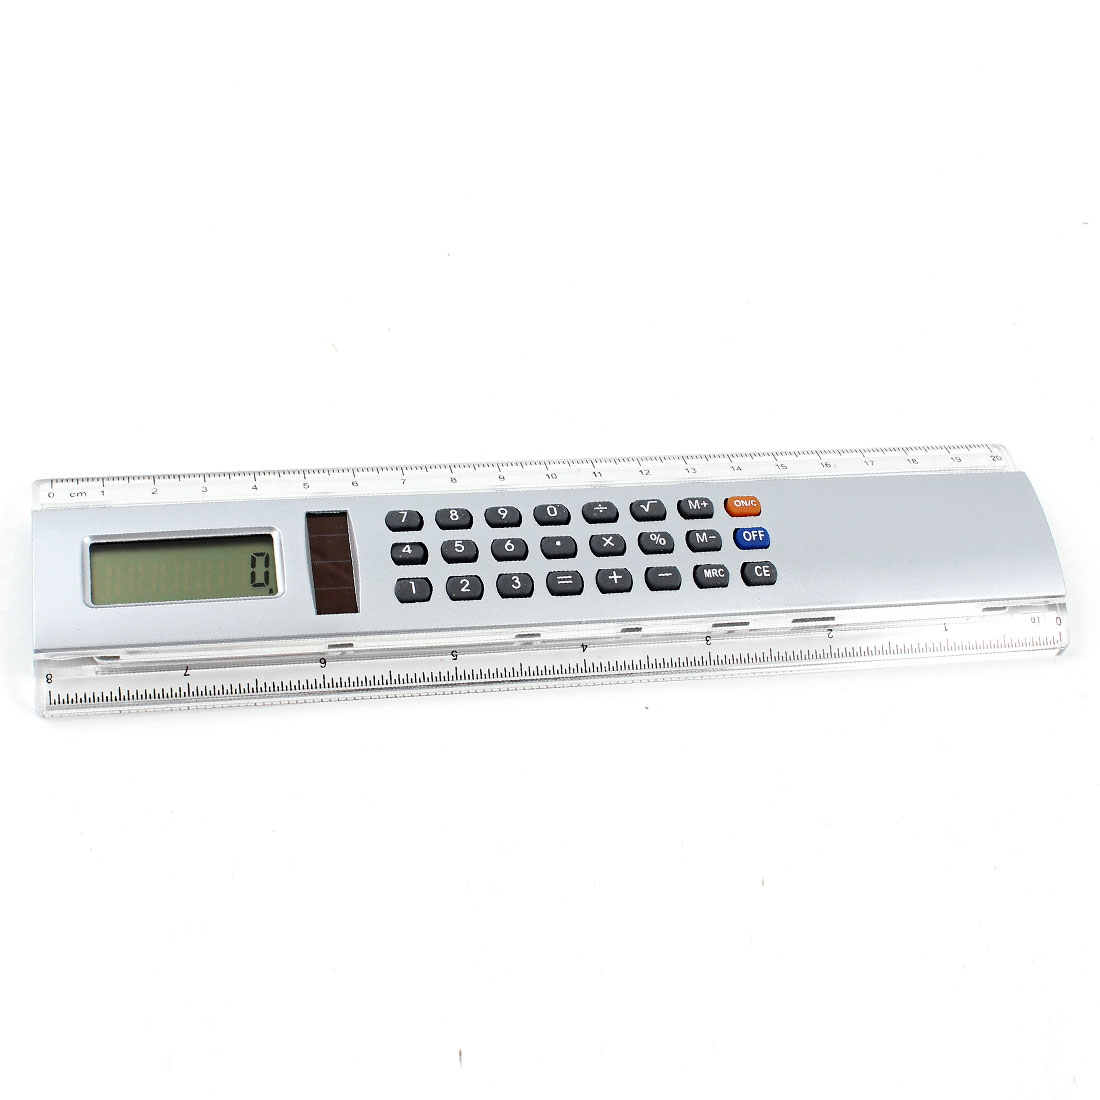 Clear Sliver Tone Inch Centimetre Ruler Edge Battery Powered Calculator Counter